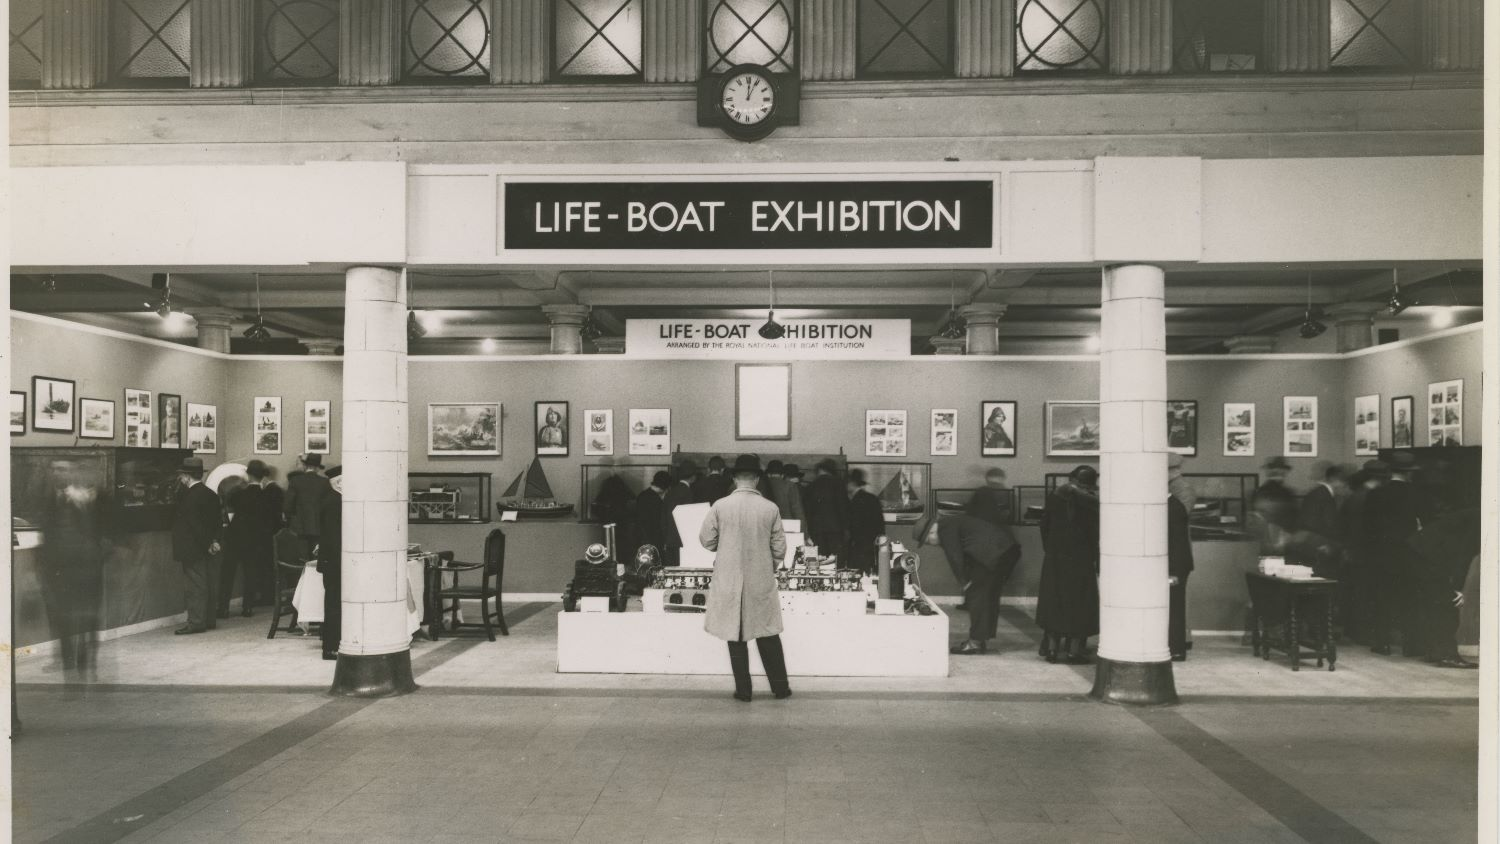 Black and white image of RNLI display in Charing Cross Underground Station